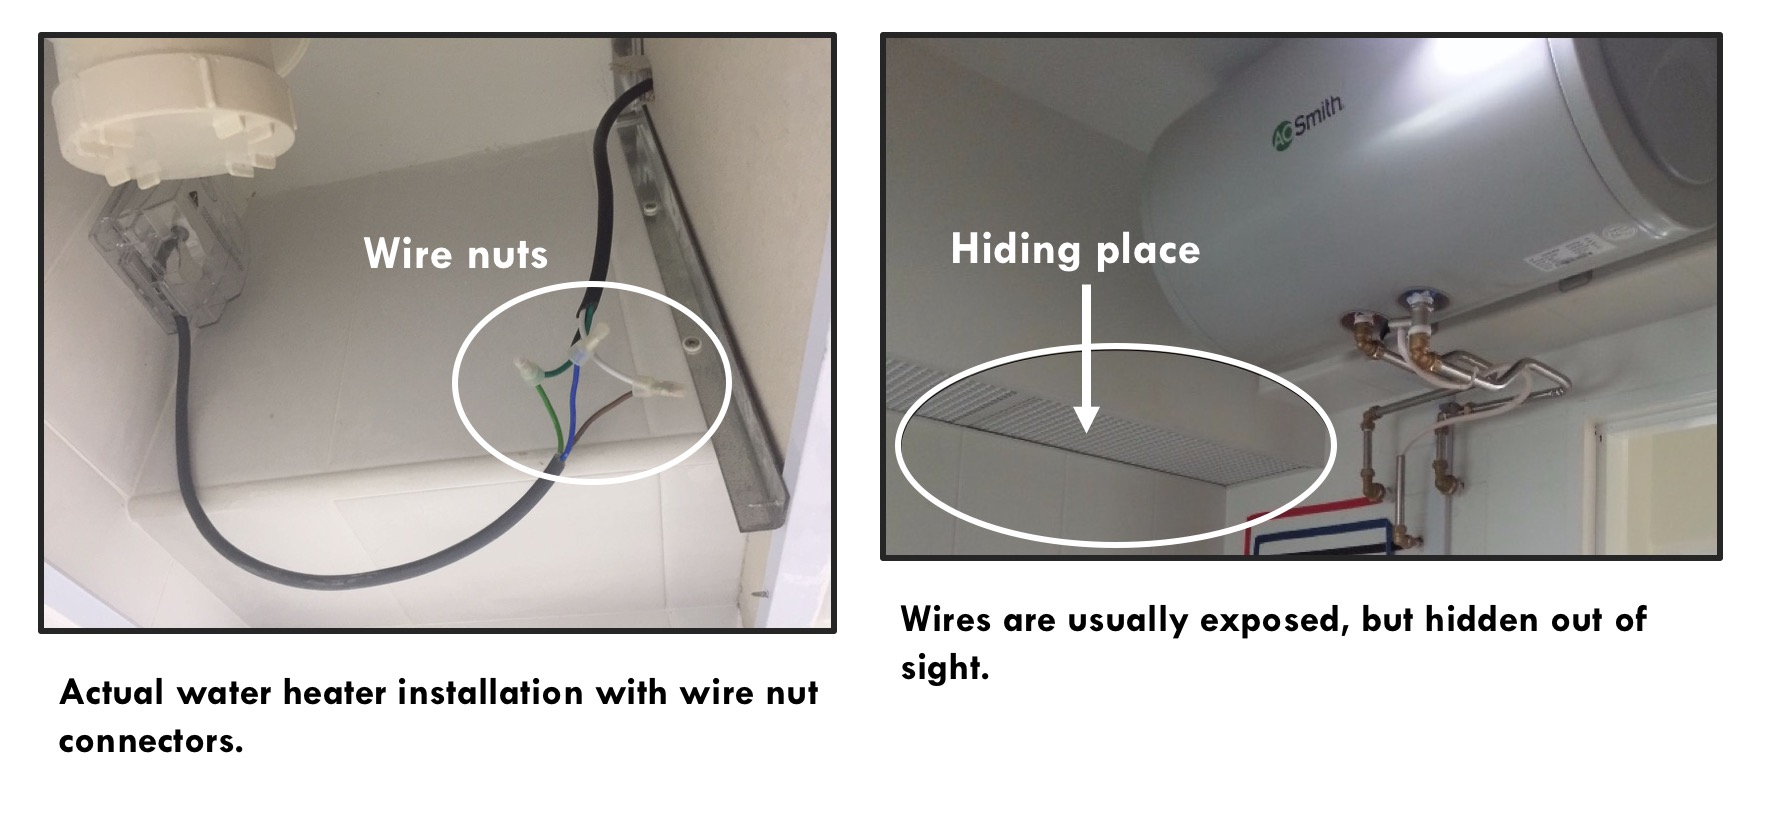 Avoid Electrocution 4 Tips Aos Bath Singapore Wiring A Ceiling Rose How To Wire Correctly Including Like Taped Wires Connectors Are Usually Left Exposed This Is 100 Safe The Run An Area That Hidden And Out Of Sight